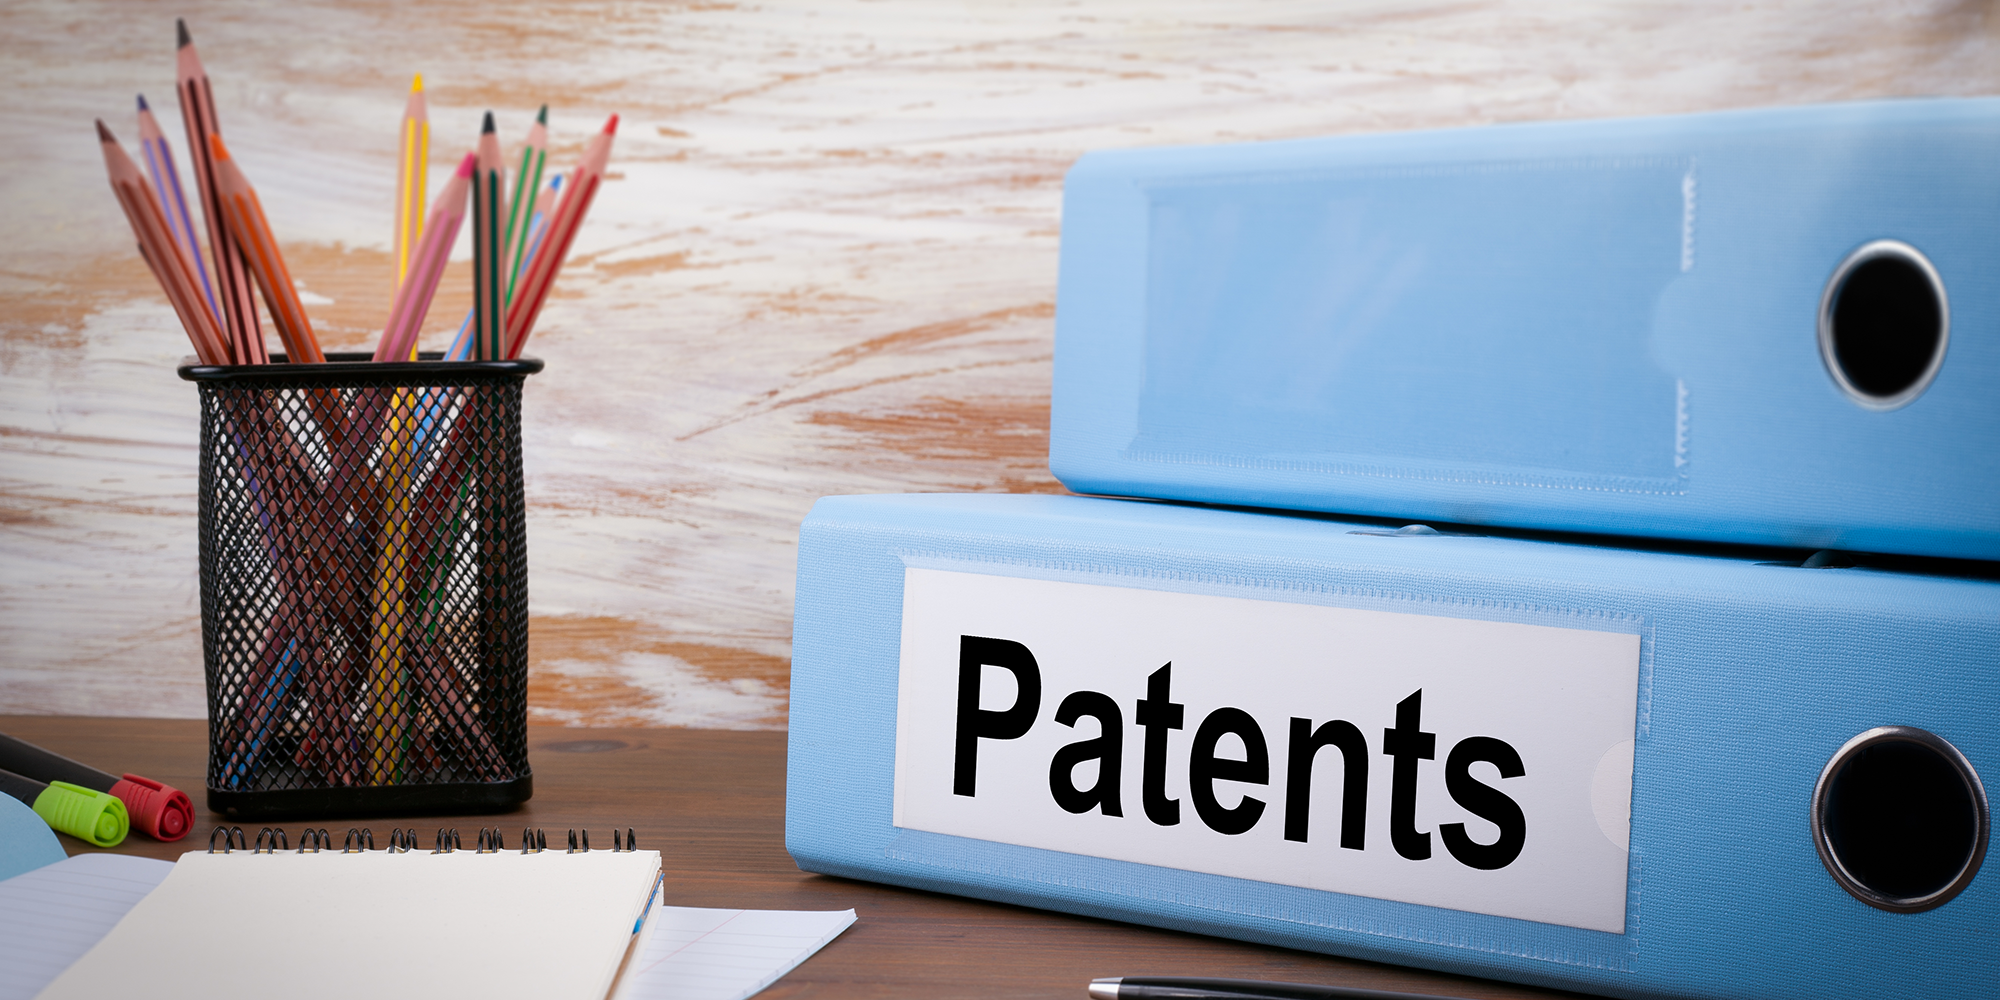 The changes currently made through the Patents Ordinance